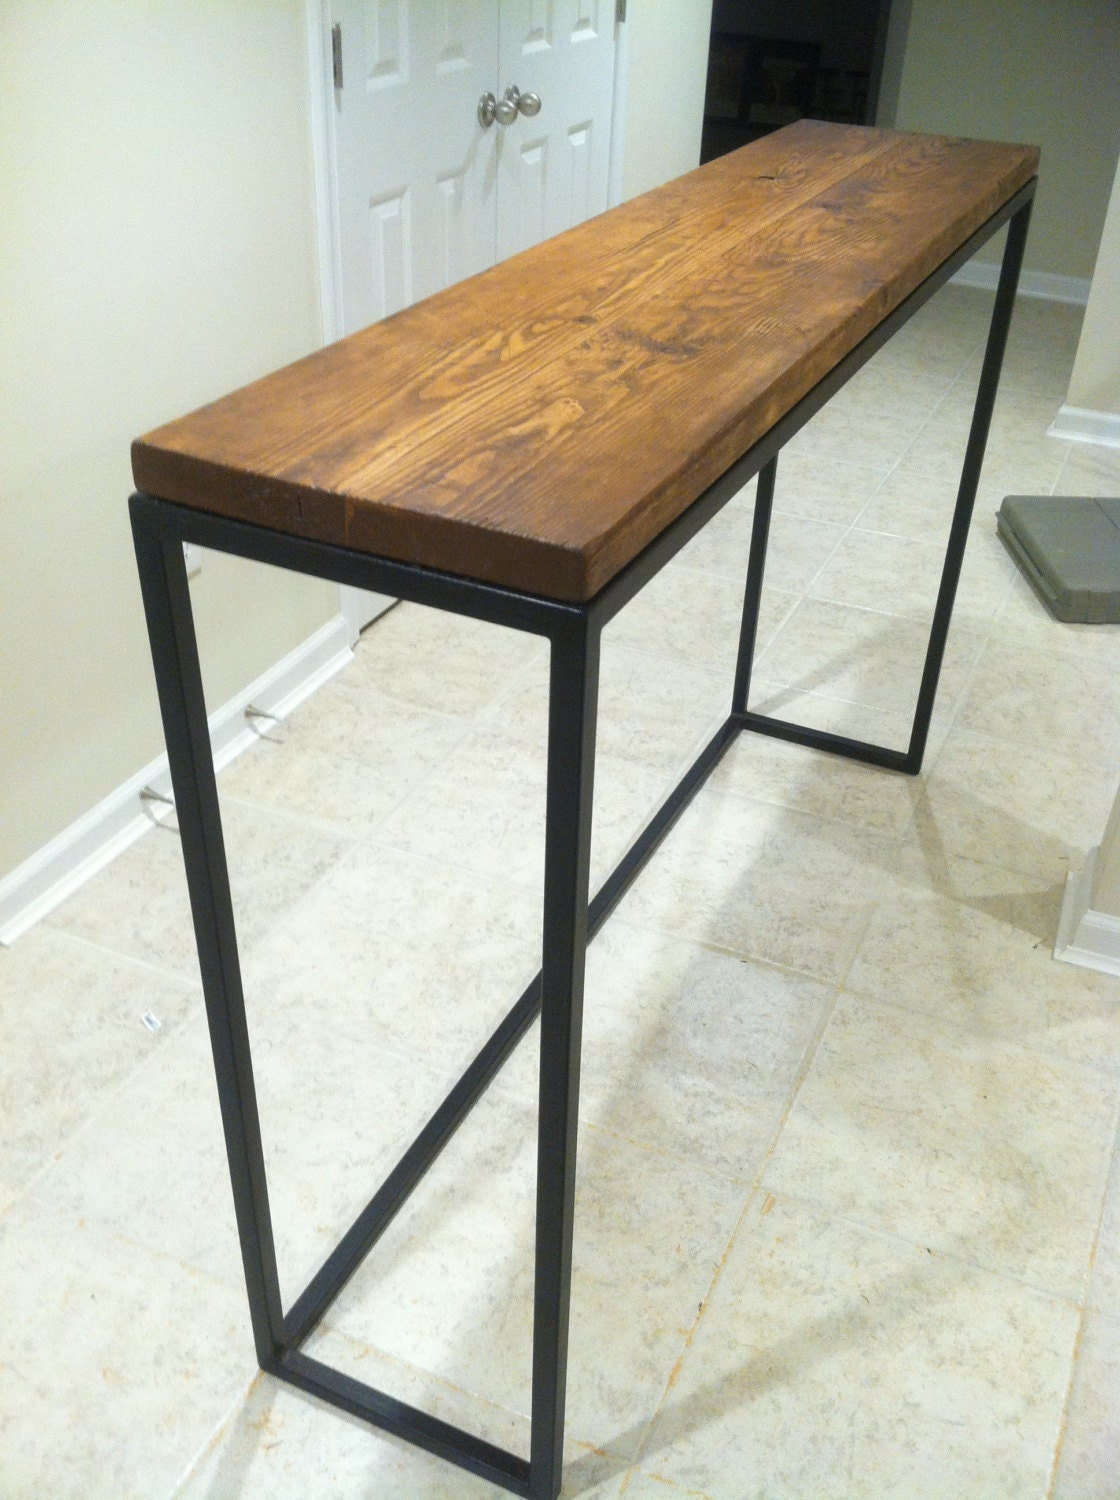 Rustic Reclaimed Wood Steel Leg Bar Table By Rustysplintermd